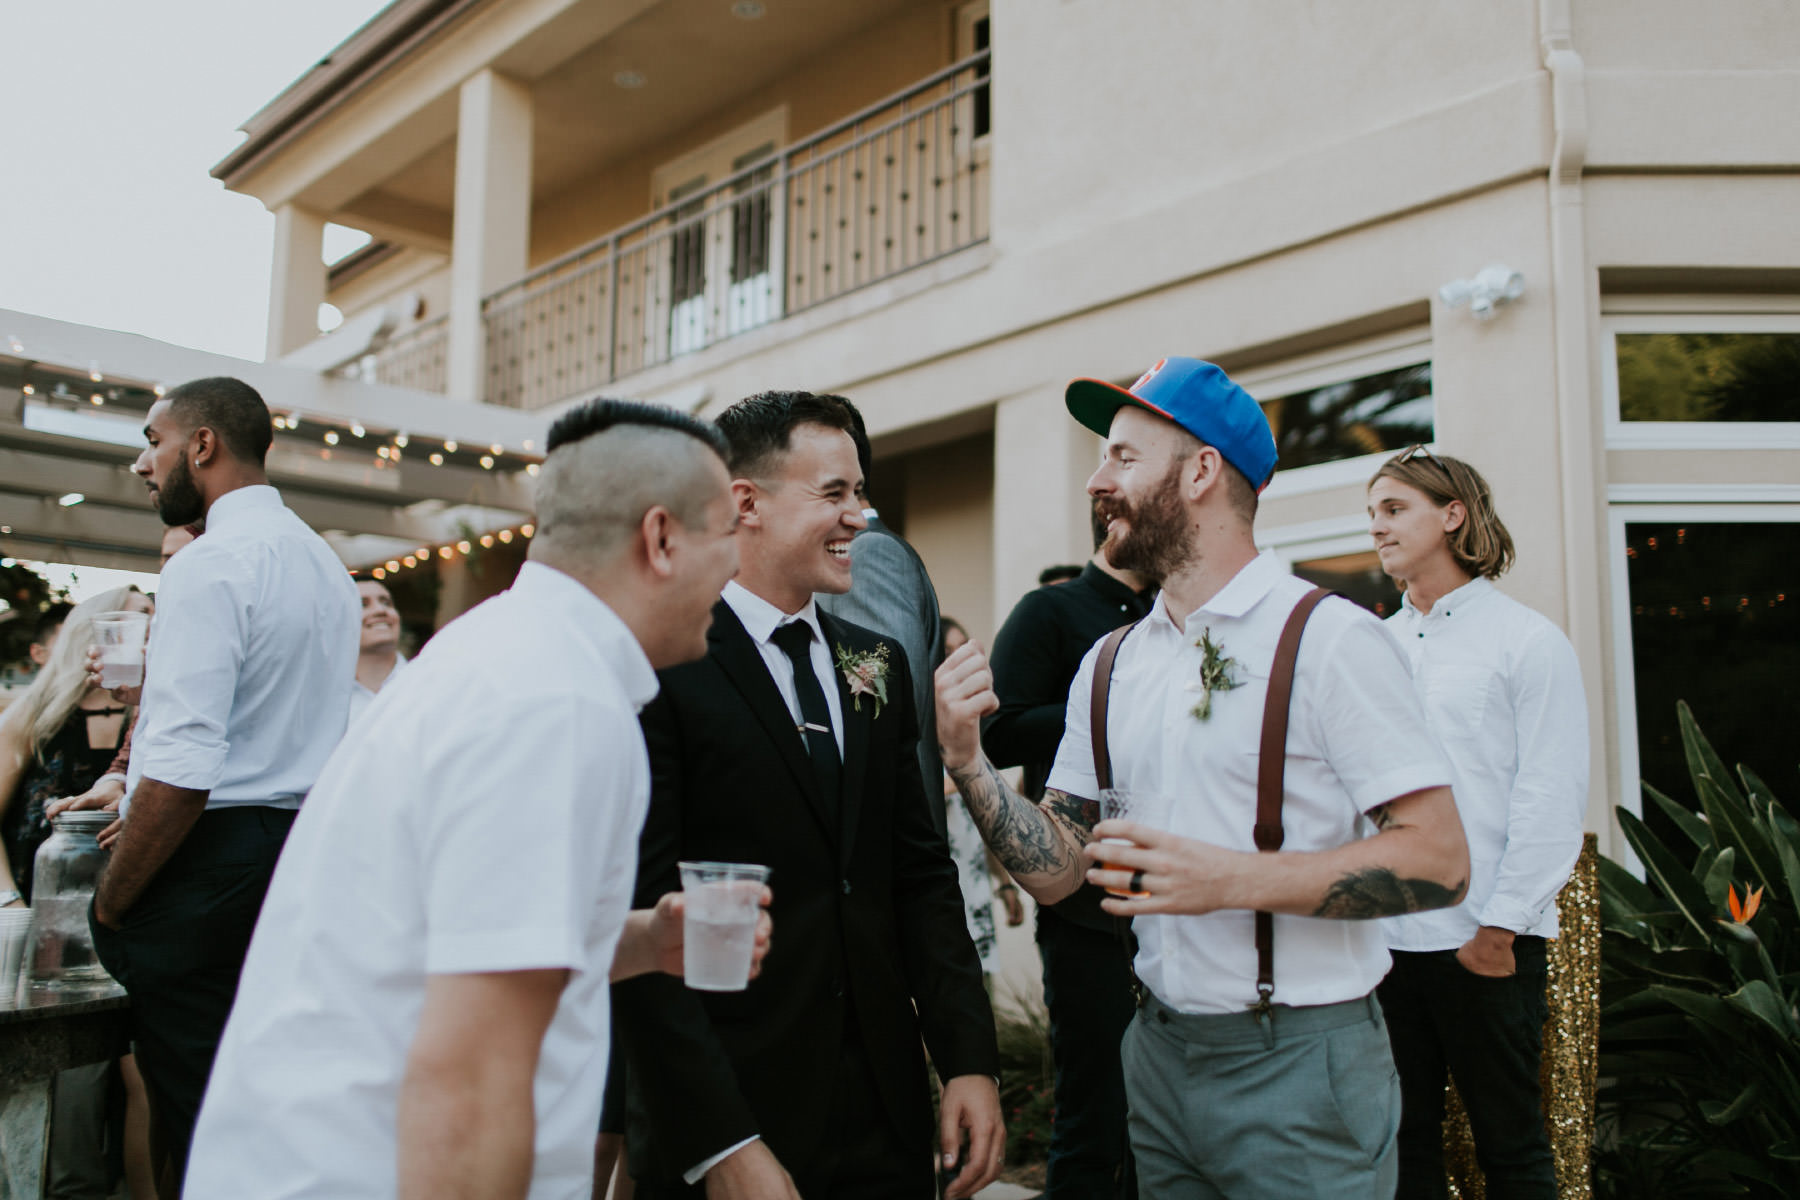 Candid groom mingling with guests at cocktail hour